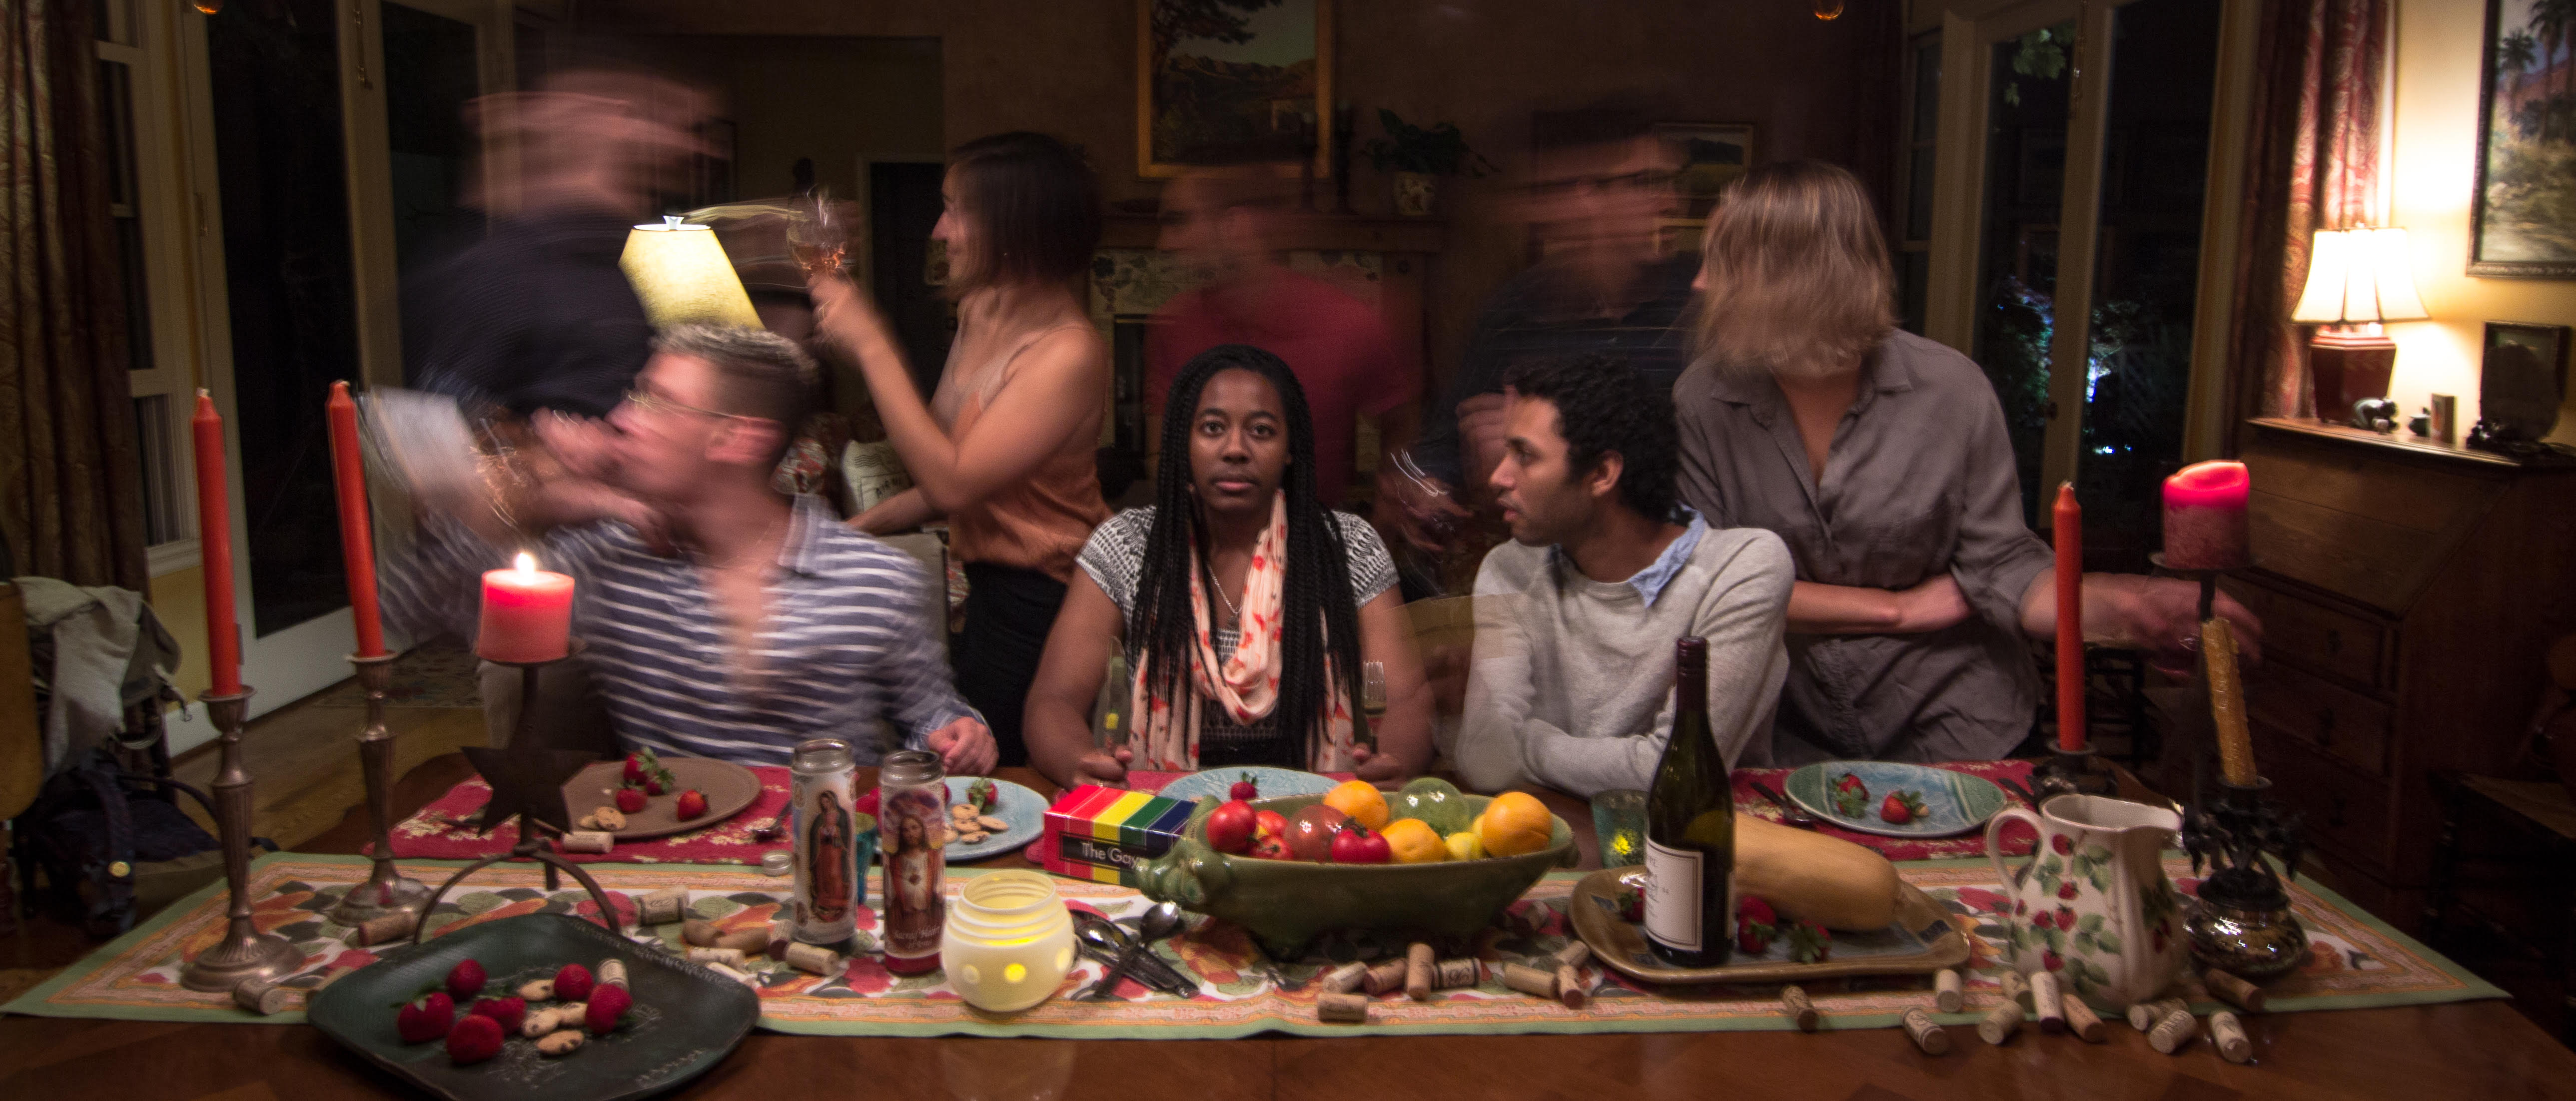 BWW Review: ON THE VERGE SEASON 3 at CAW: Community Arts Workshop